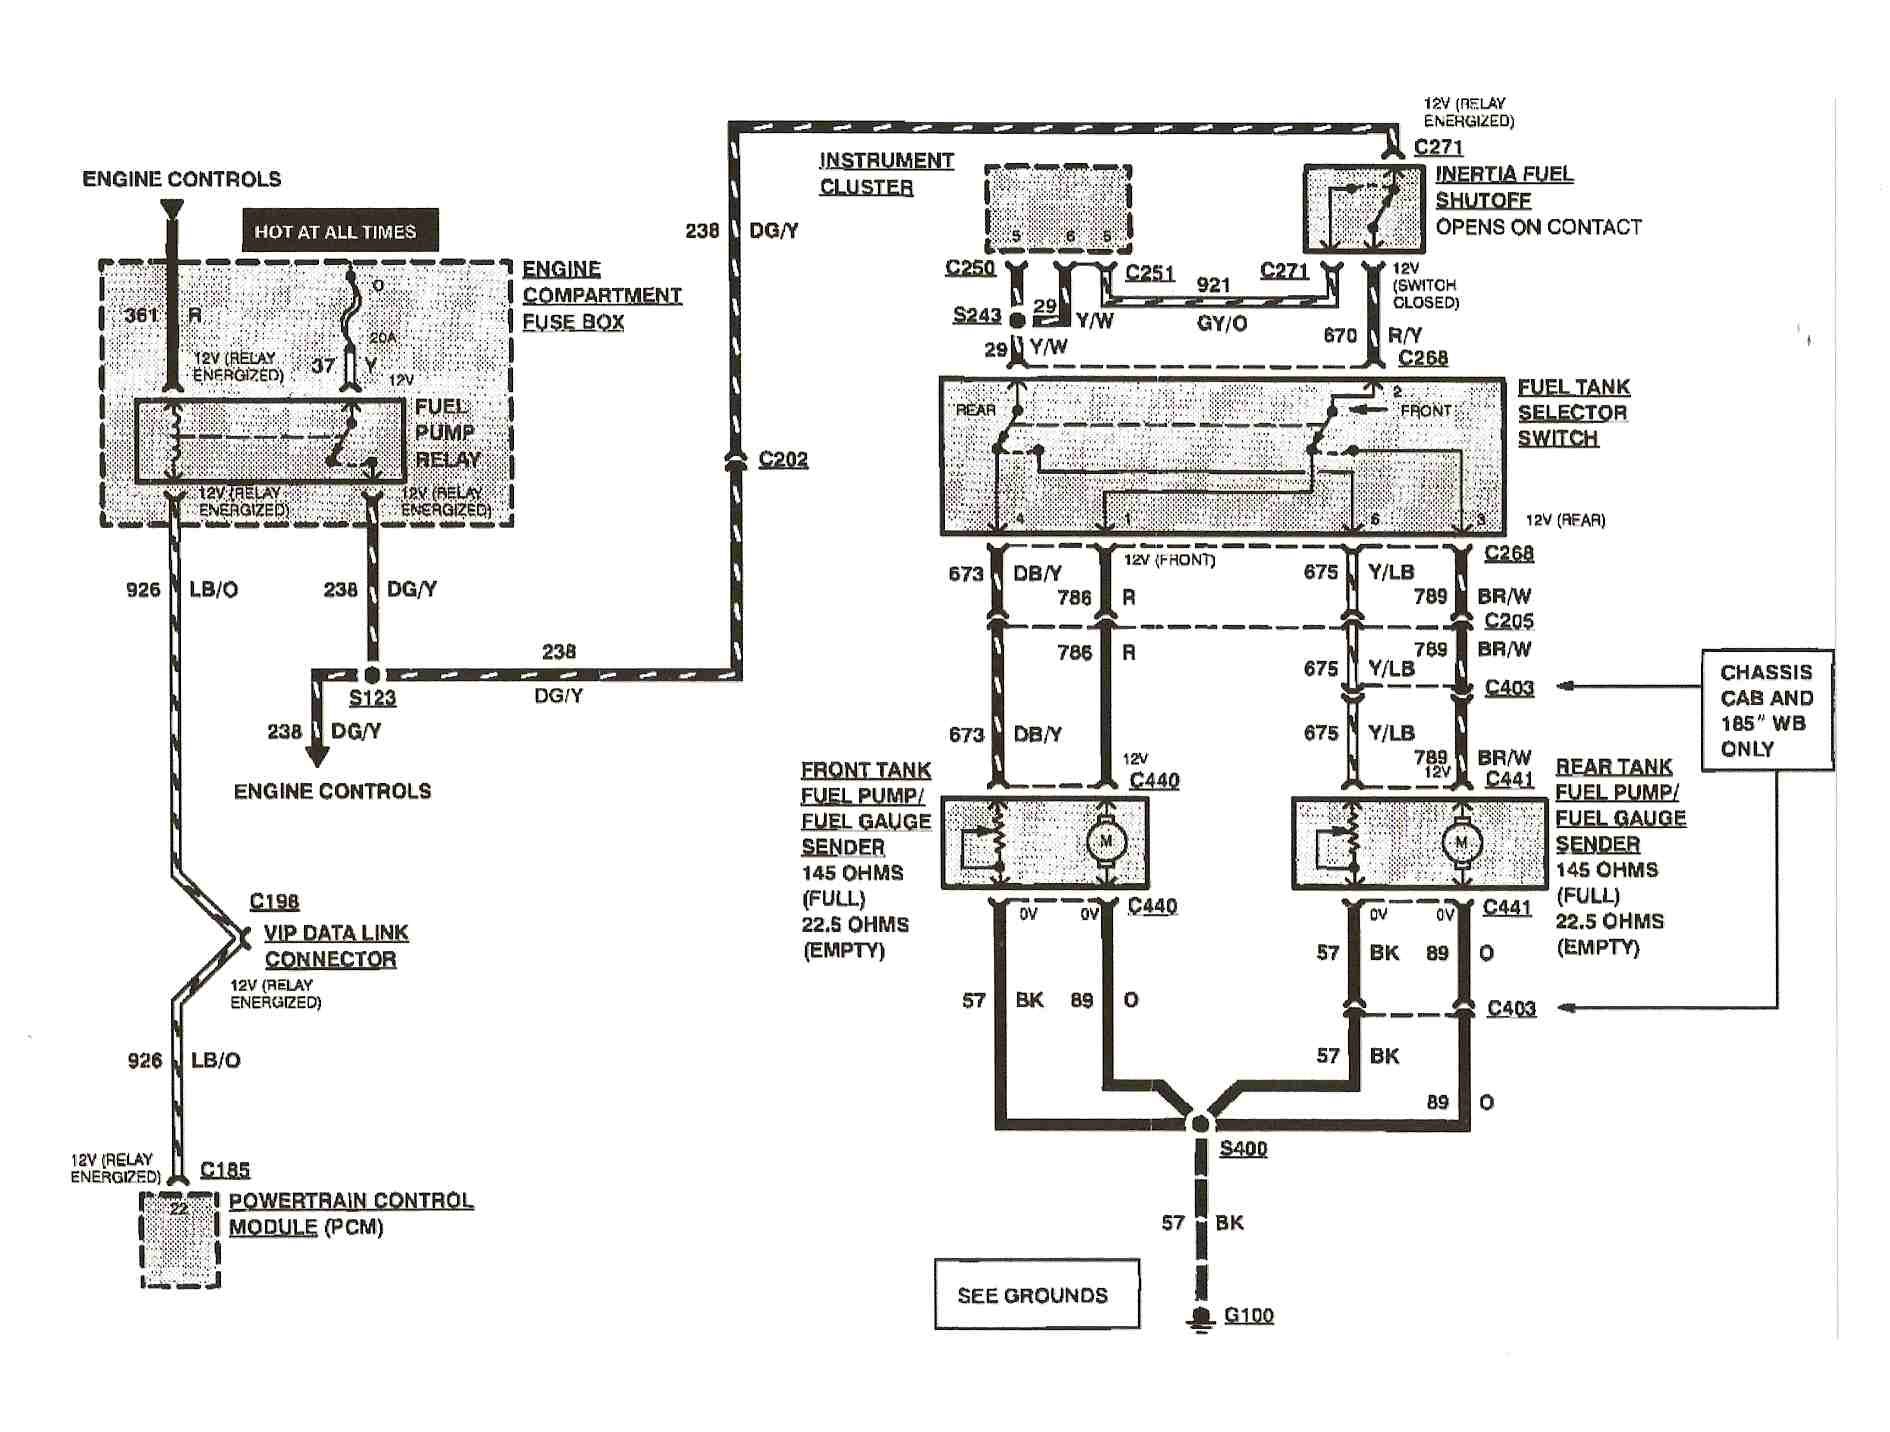 1993 ford f150 4wd. rear fuel pump not coming on. q: what ... 1993 ford f 150 ignition wiring diagram 2008 ford f 150 ignition wiring diagram